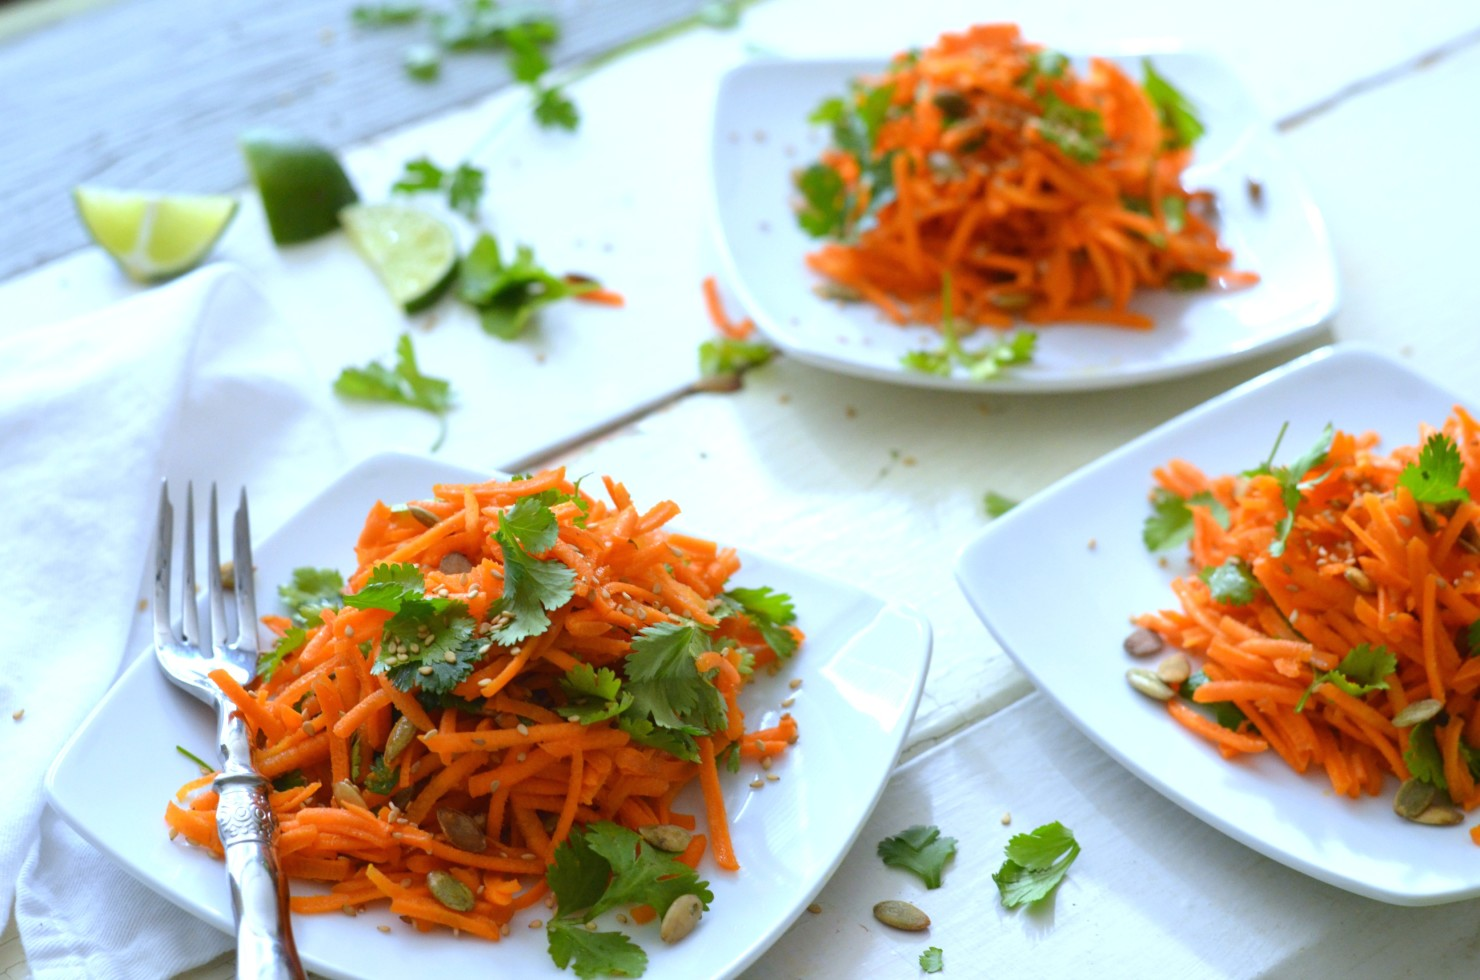 Carrot Cilantro Salad with Ginger Peanut Dressing and Pumpkin Seeds